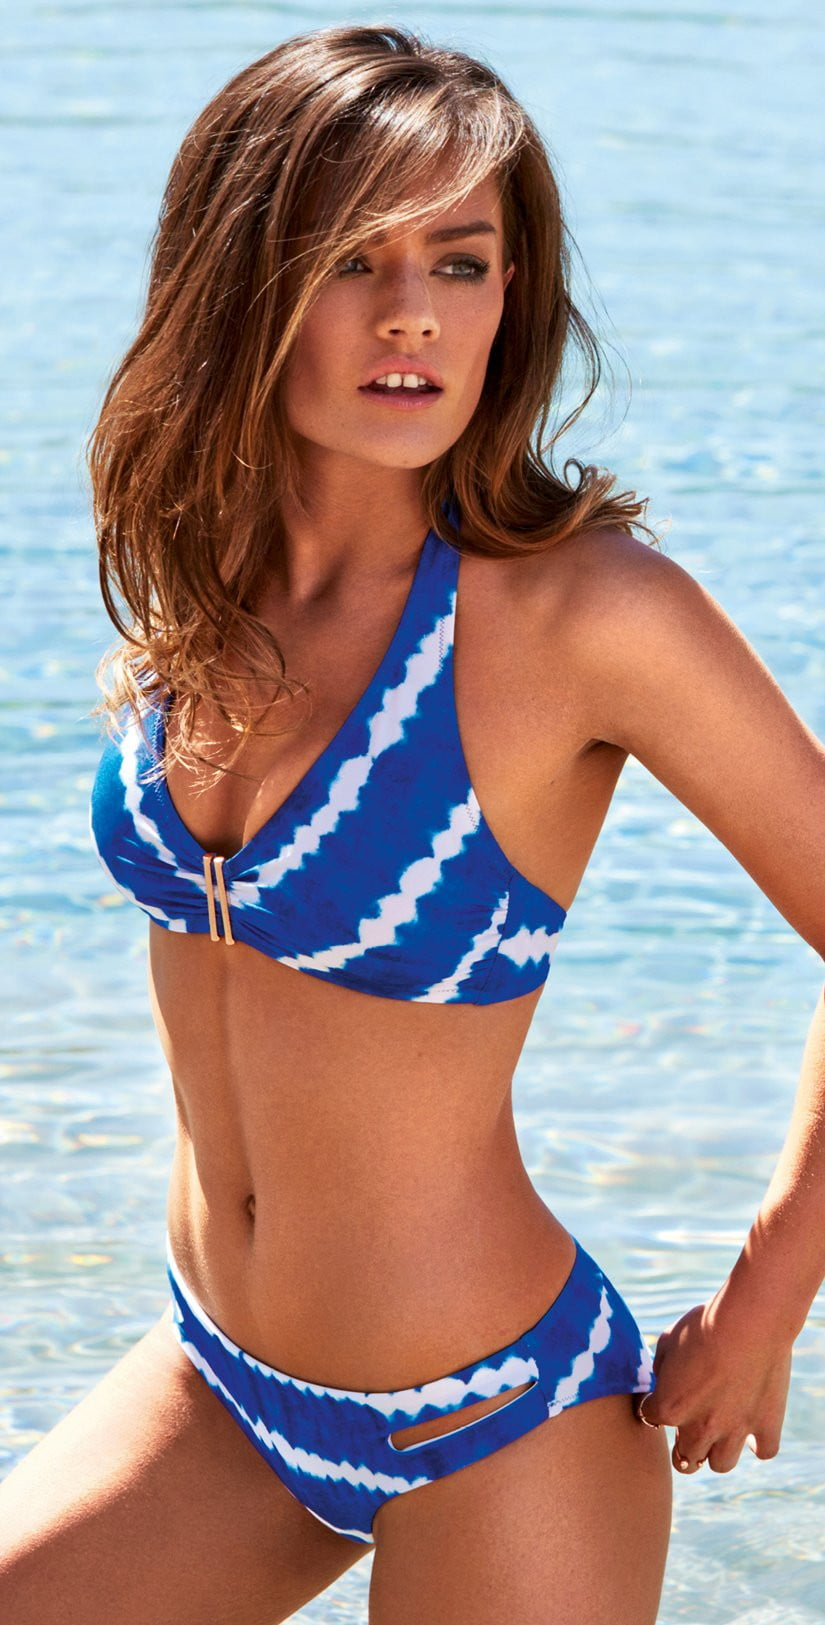 Watercult Tie Dye Tribe Bikini Top 7561-155-695: